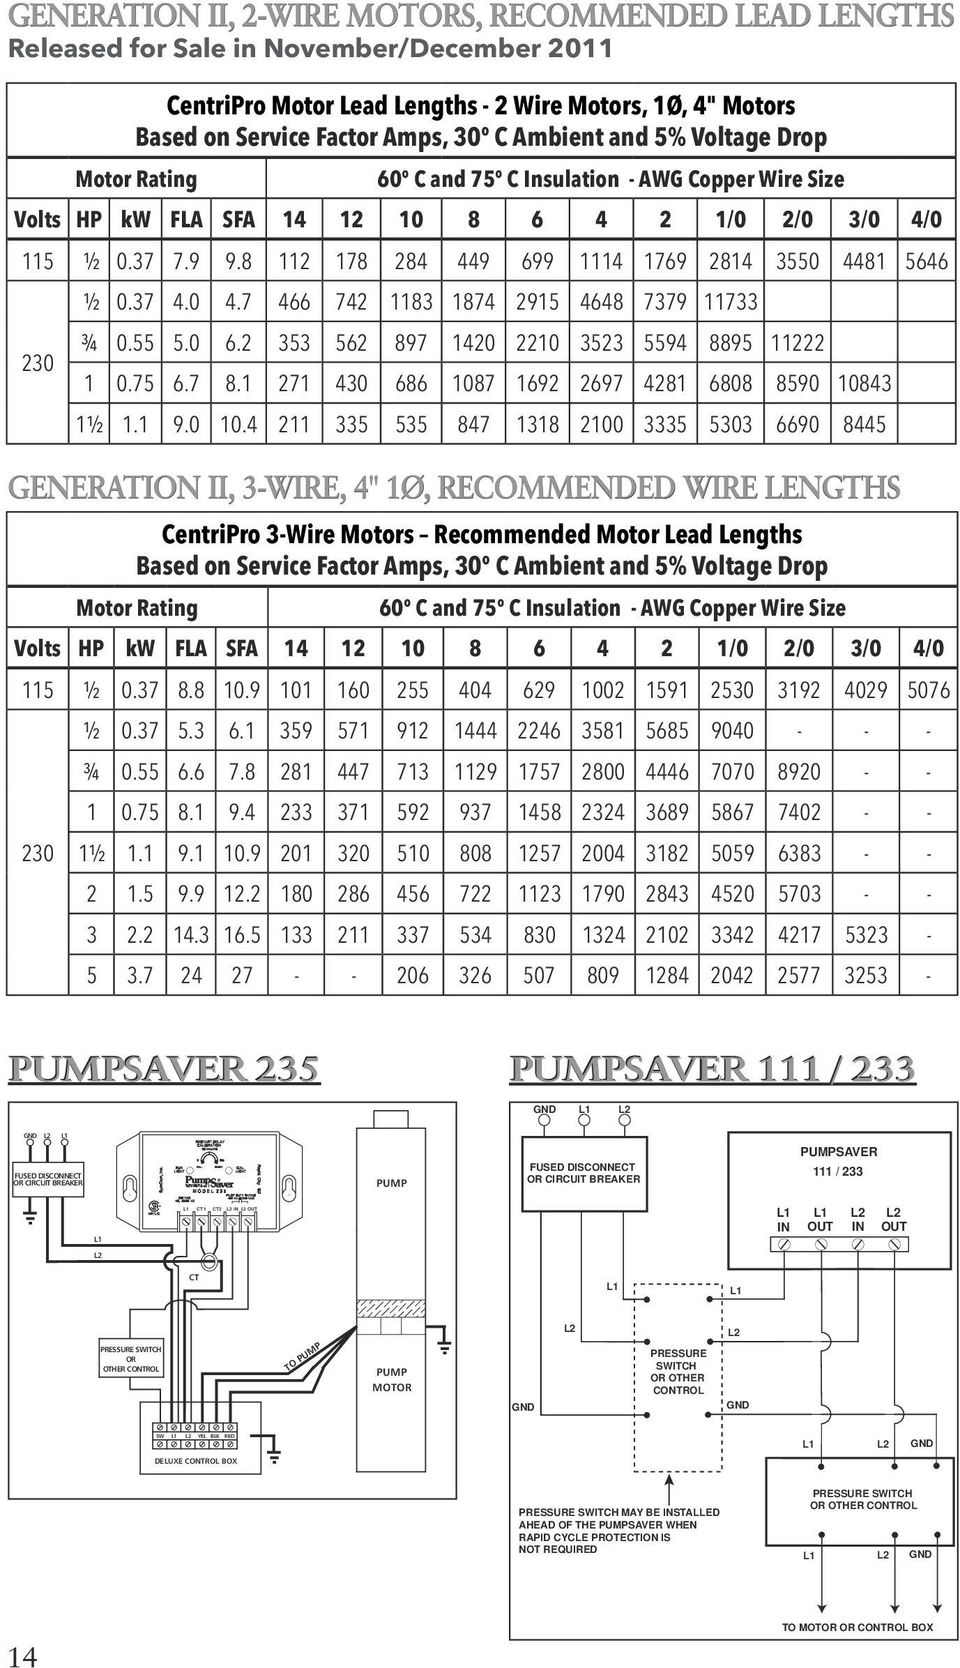 siga cc1s wiring diagram Download-Siga Ct1 Wiring Diagram New Siga Ct1 Wiring Diagram Siga Io 20-o